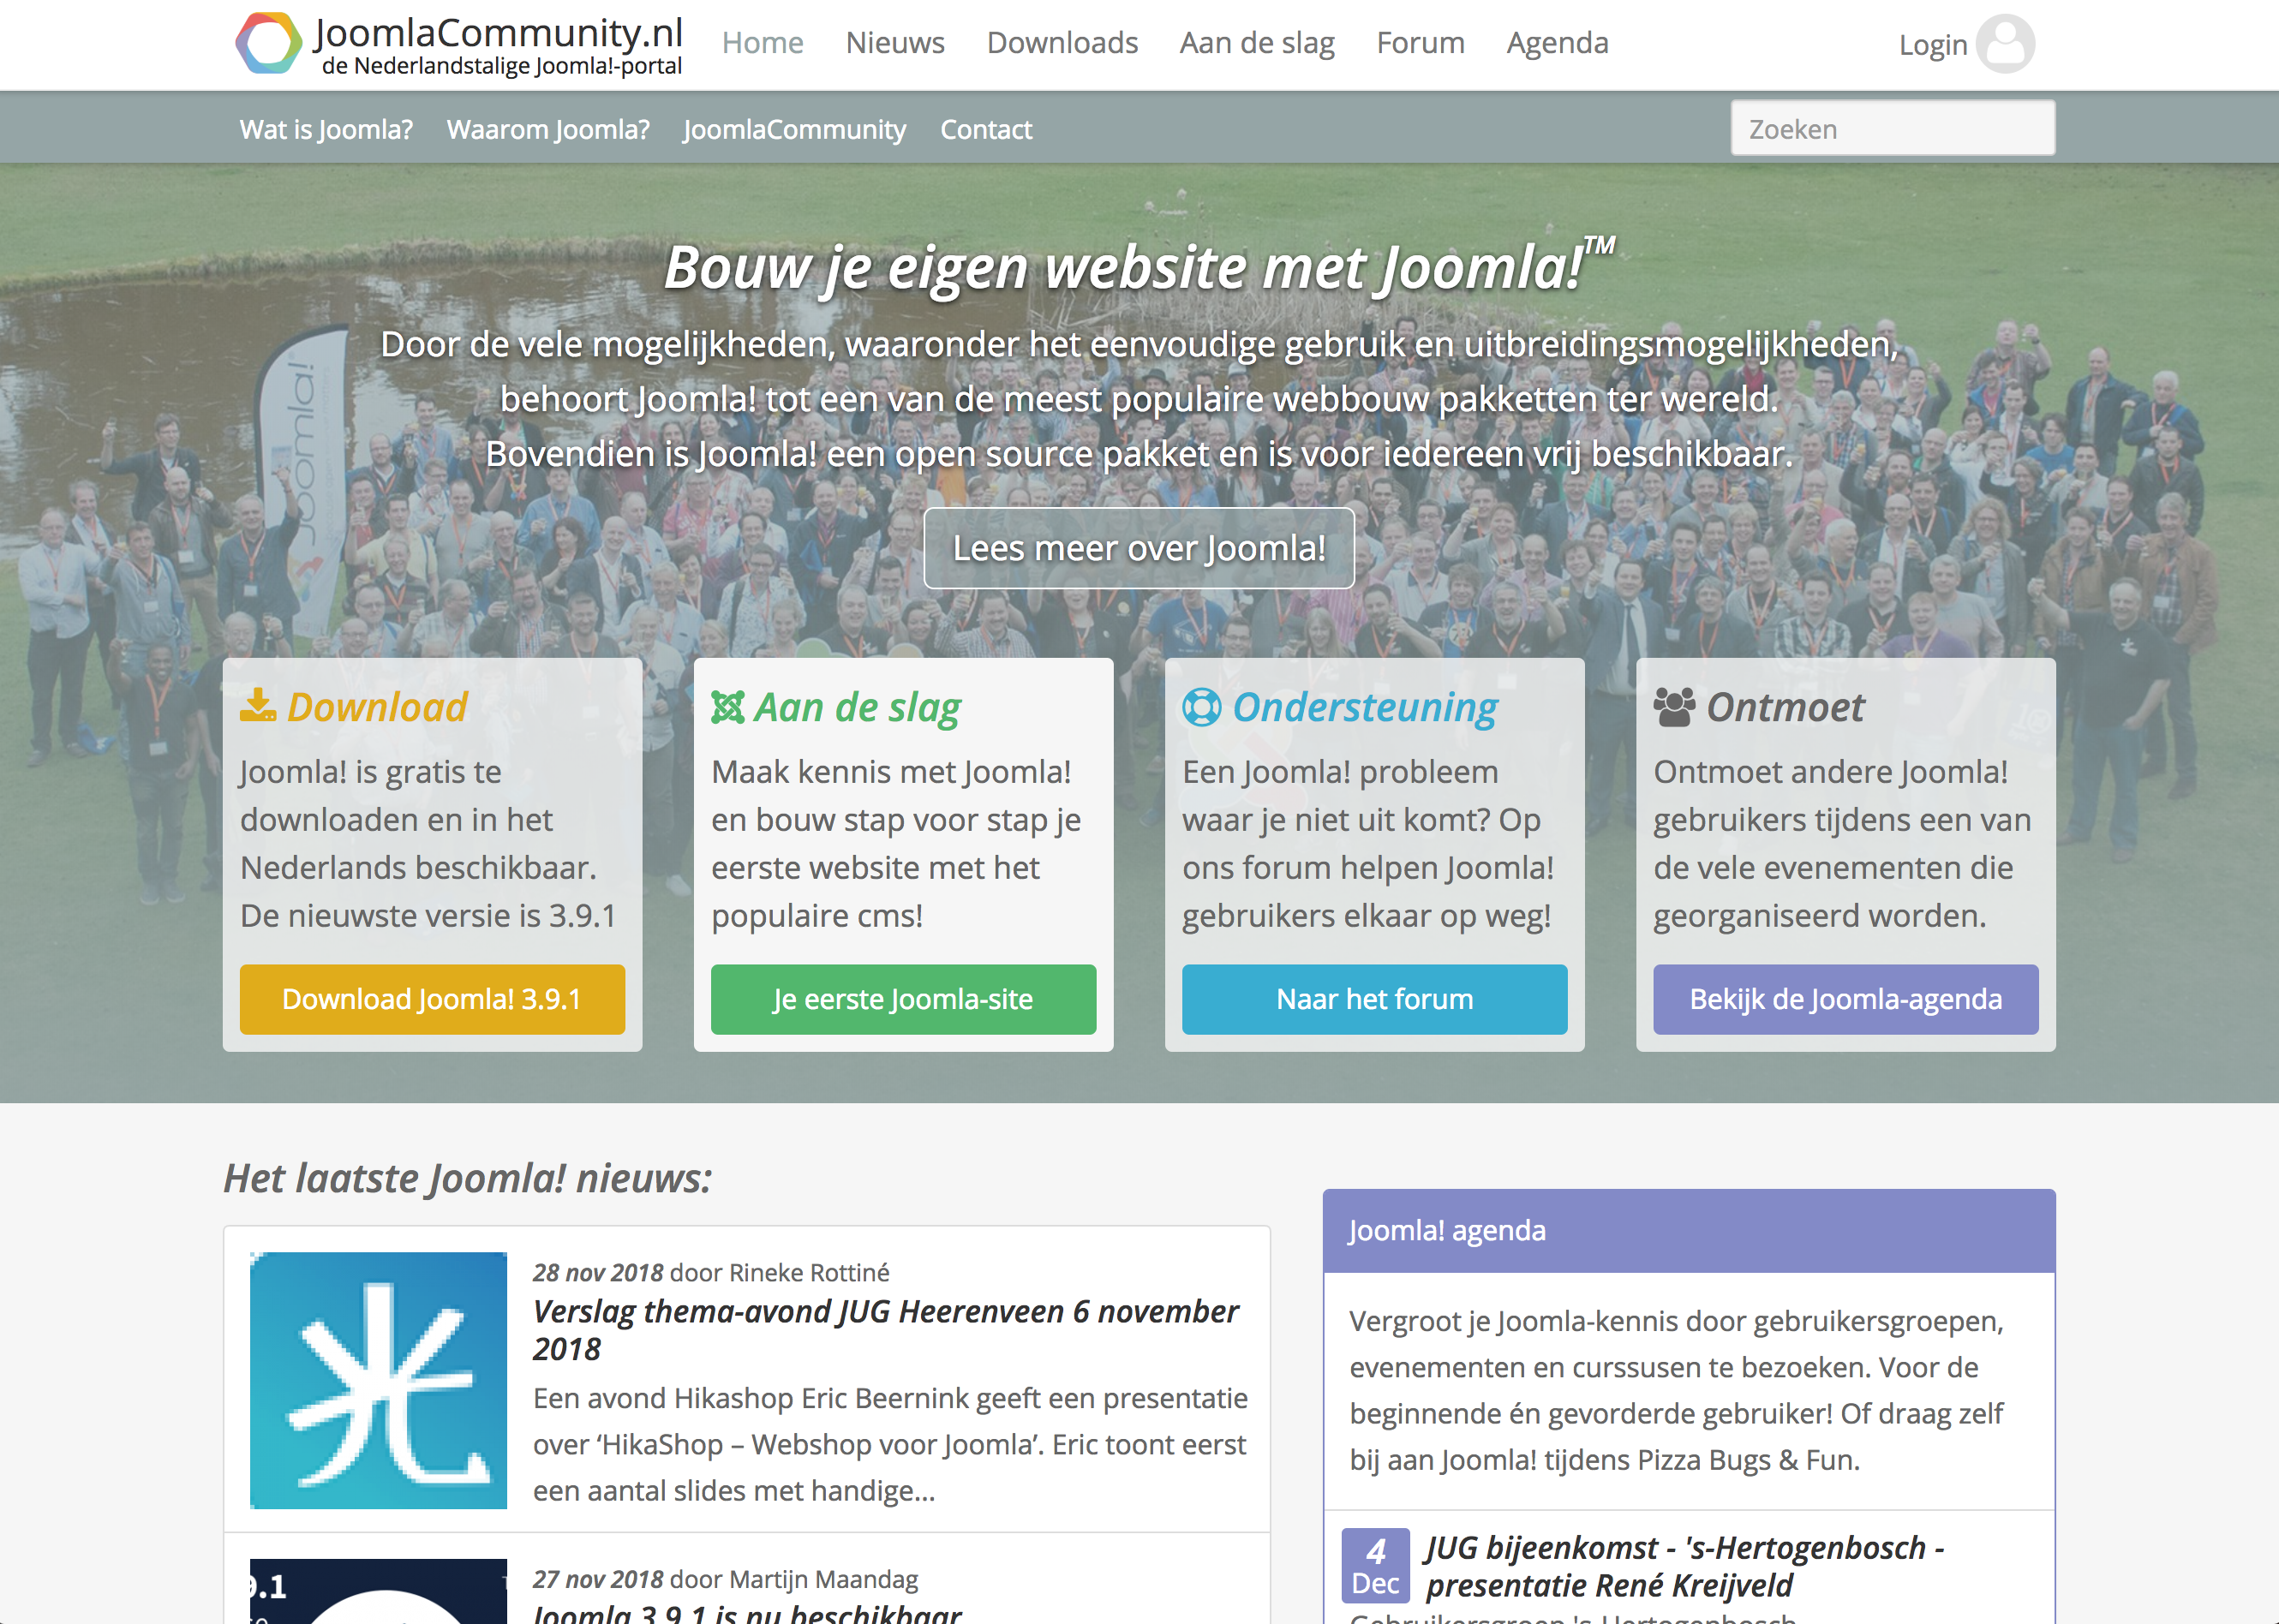 JoomlaCommunity.nl website